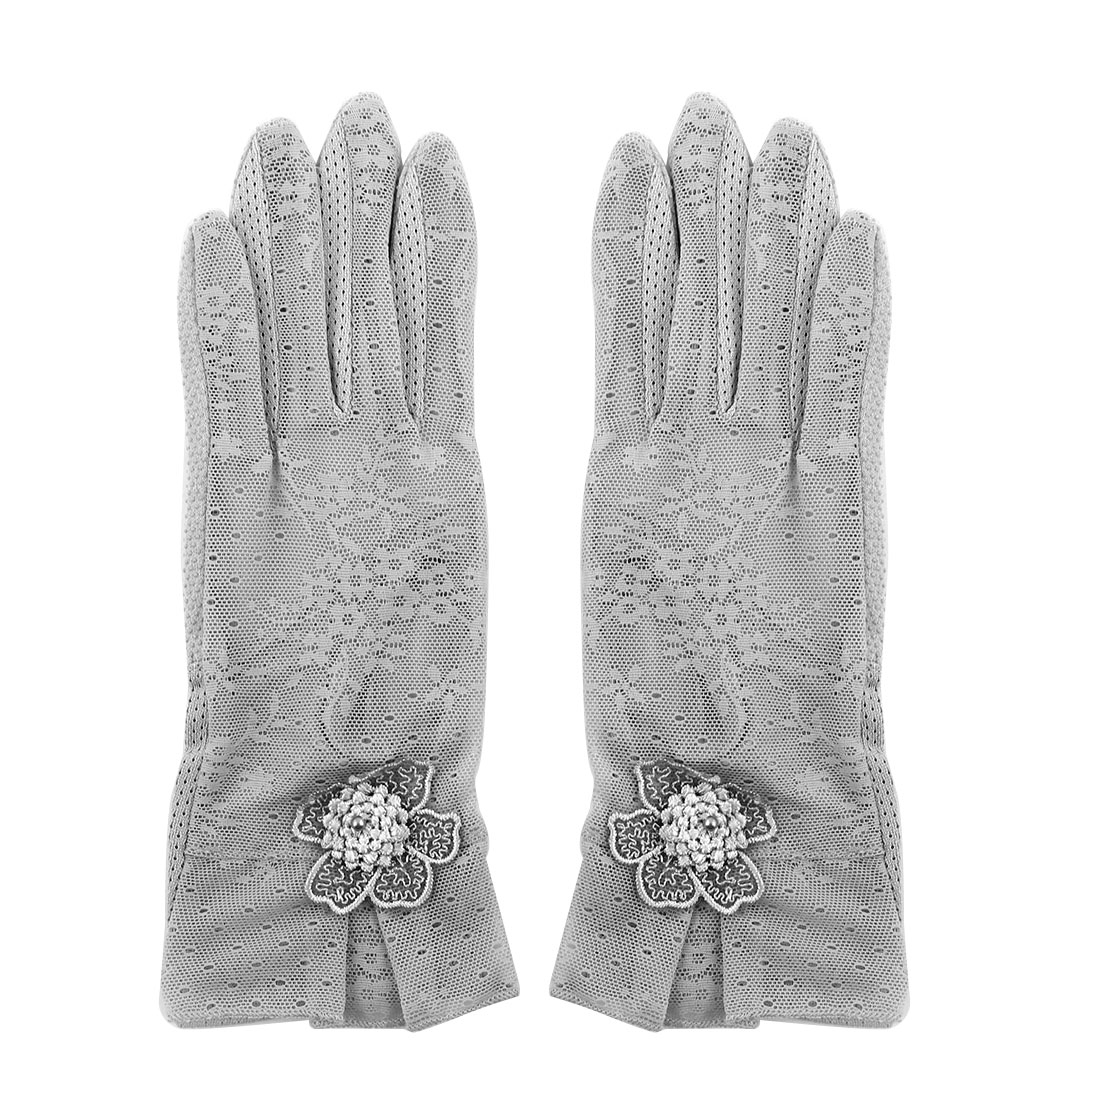 Outdoor Travel Hiking Floral Lace Decor Wrist Length Full Finger Sun Resistant Gloves Gray Pair for Women